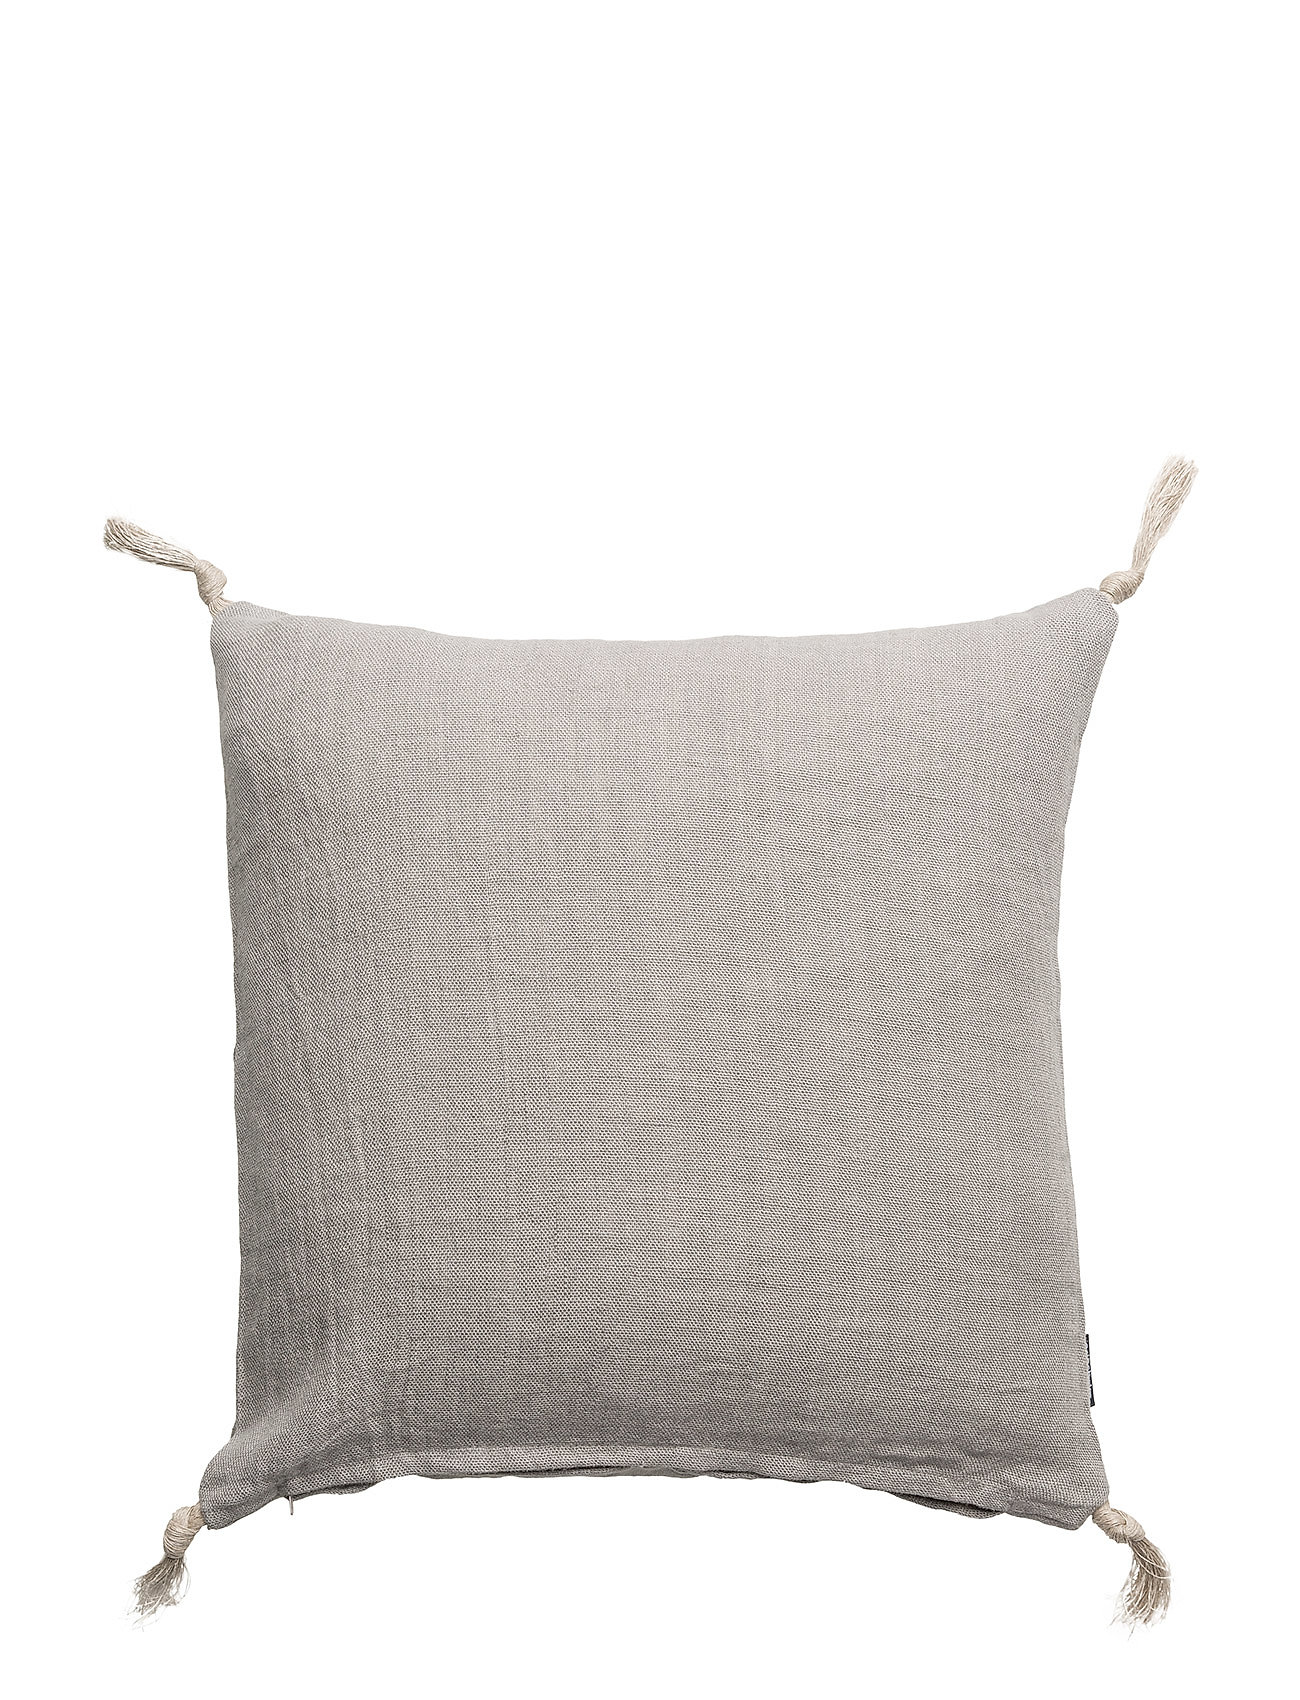 Gripsholm CUSHION COVER - LIGHT GREY